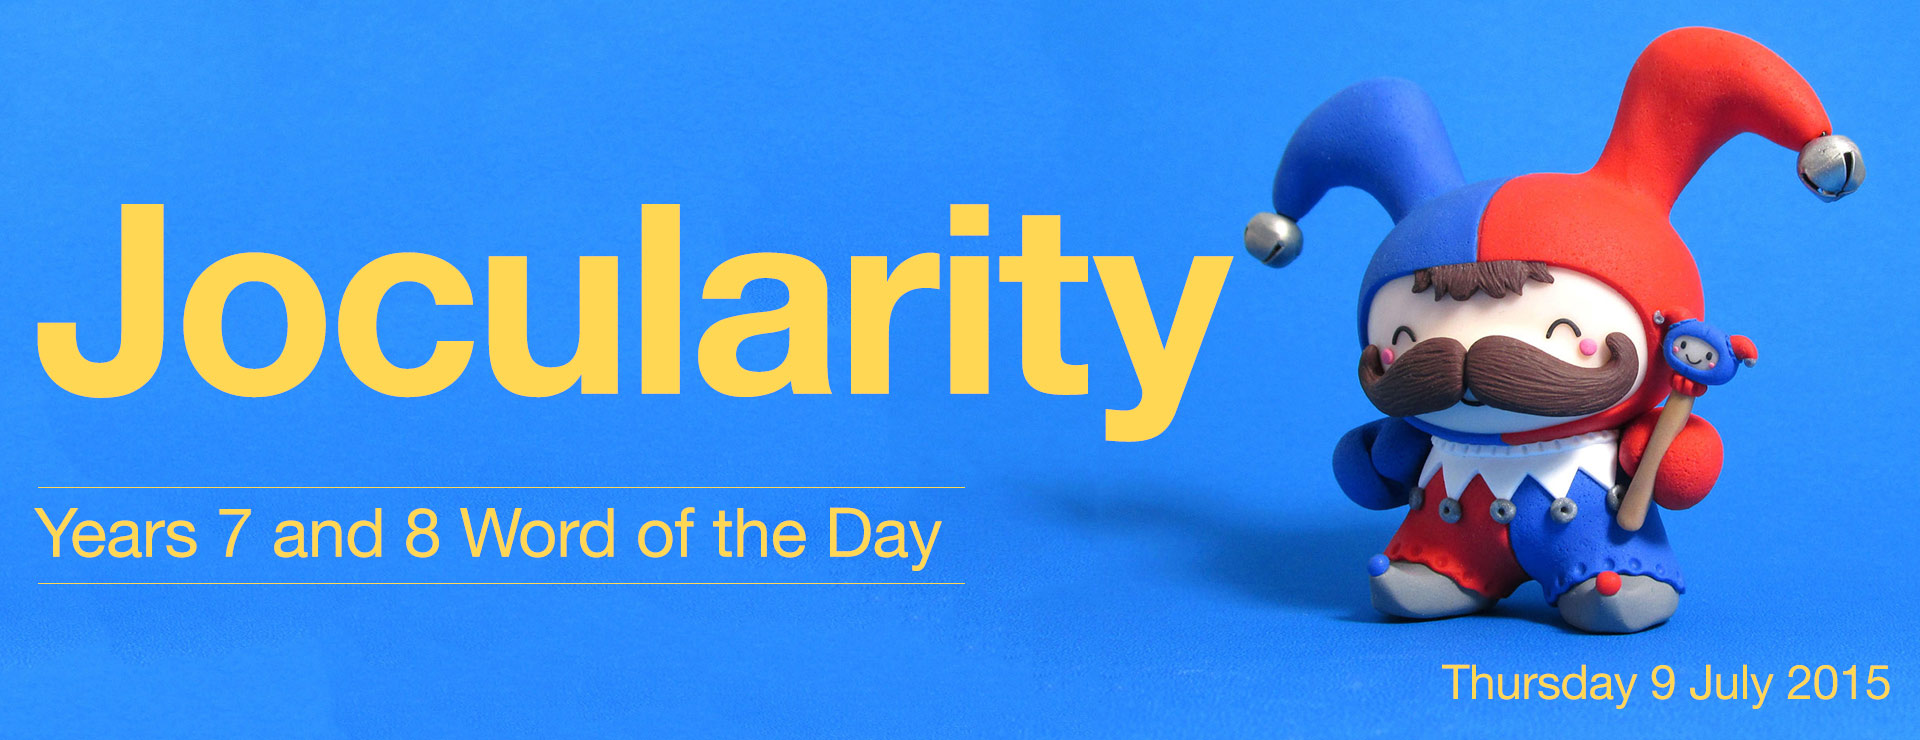 Word-of-the-Day-120.jpg